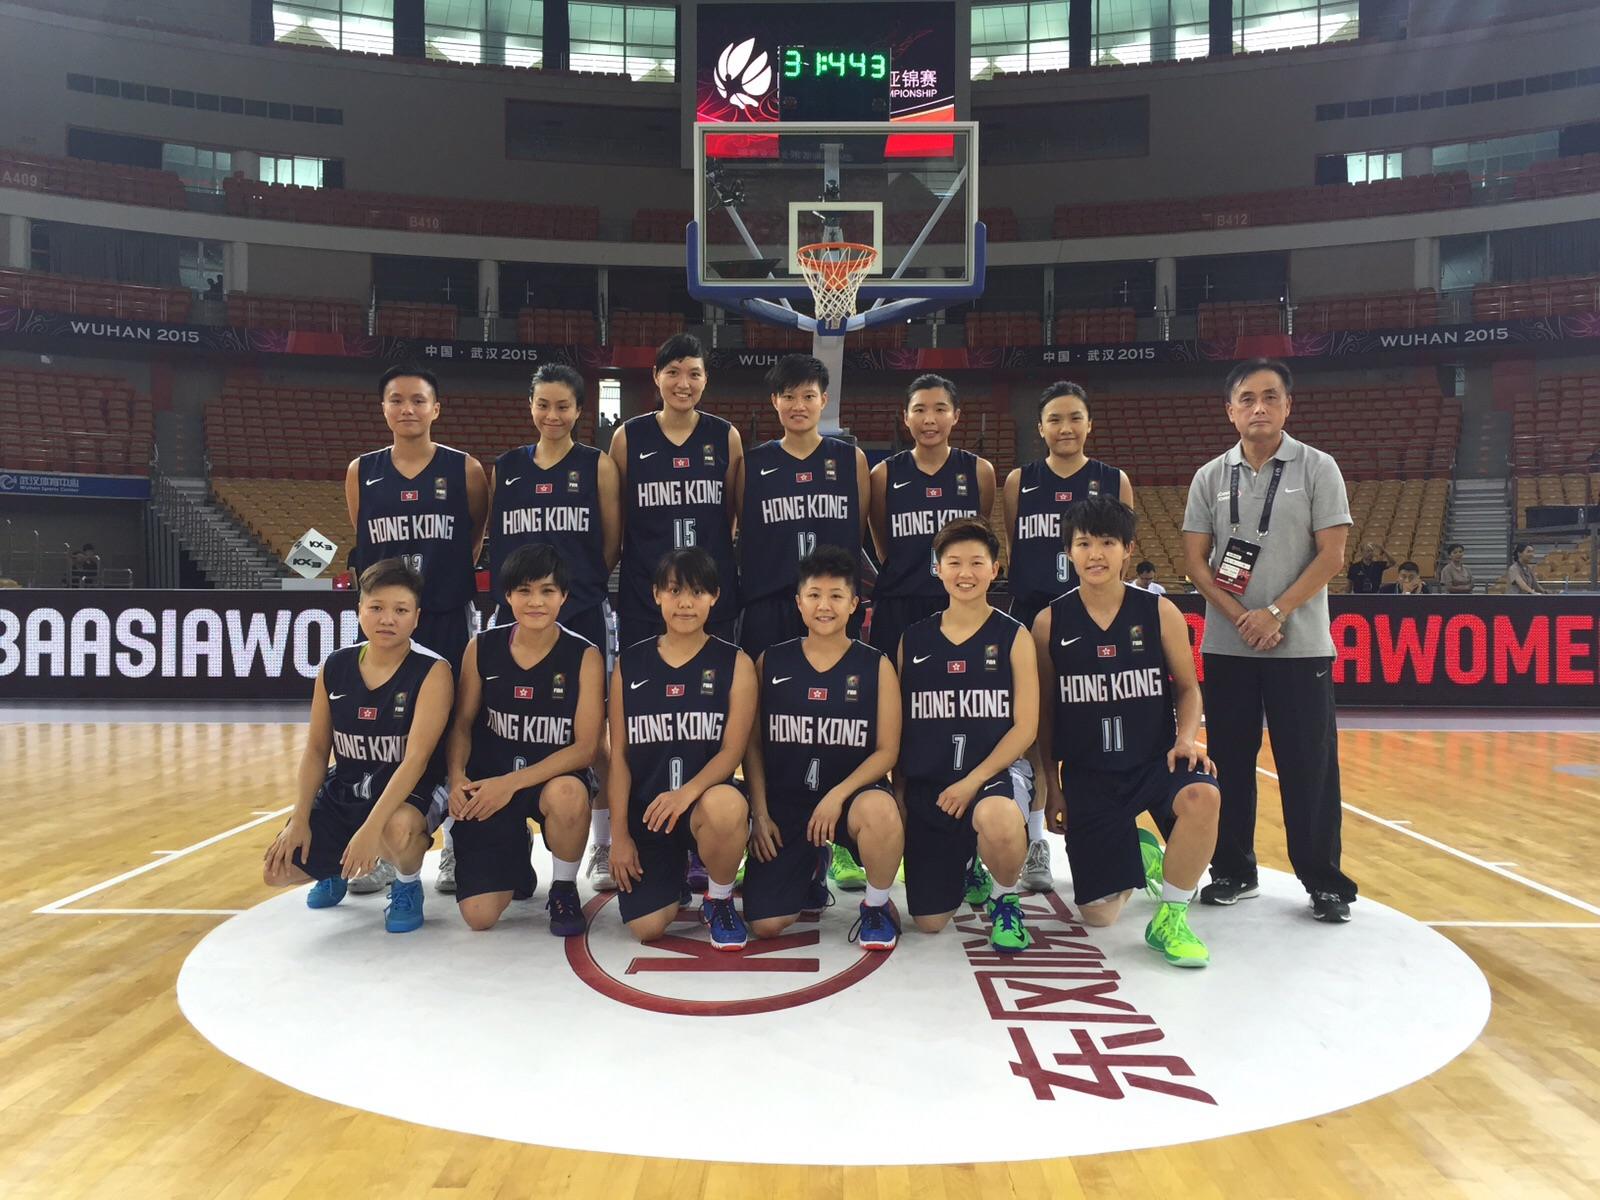 26th FIBAAsiaWomen